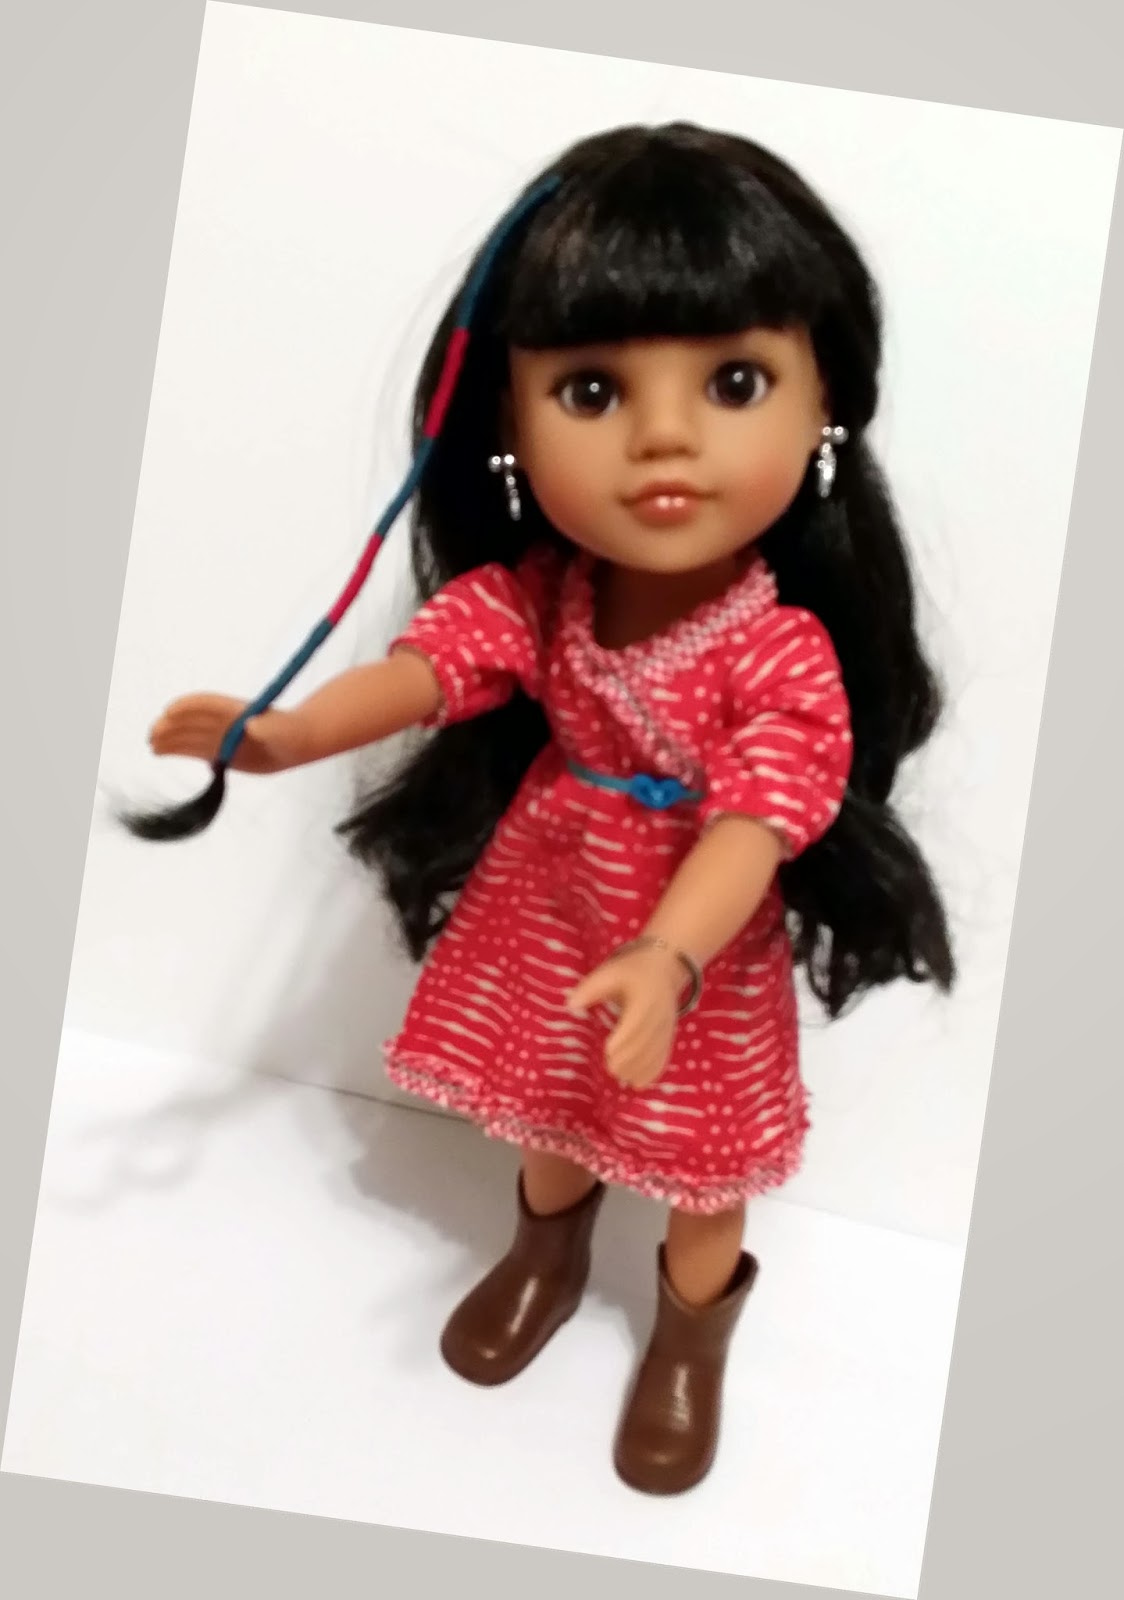 Mosi with hair twist, heart4heart doll